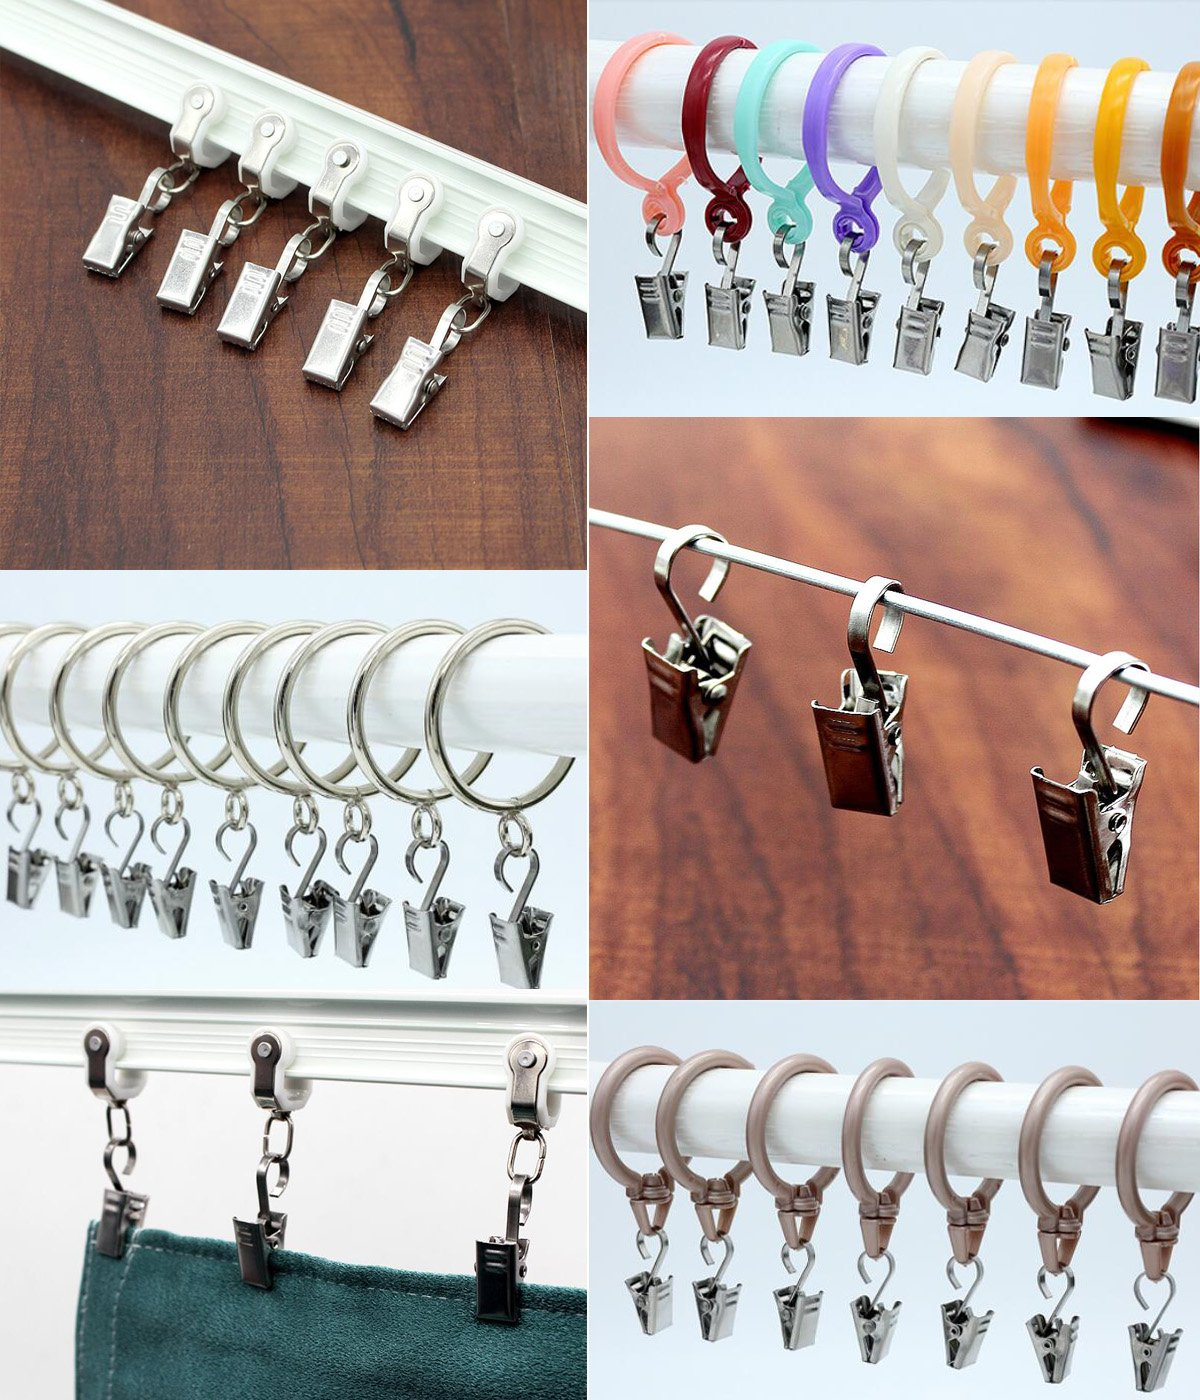 BP-CurtainClips-Silver-25P Art Craft Display and Outdoor Activities Supplies Silver, 1 Inch Coideal 25 Pack Small Curtain Clips Hooks Wide Flat String Party Lights Hanger Wire Holder for Shower Home Decoration Photos